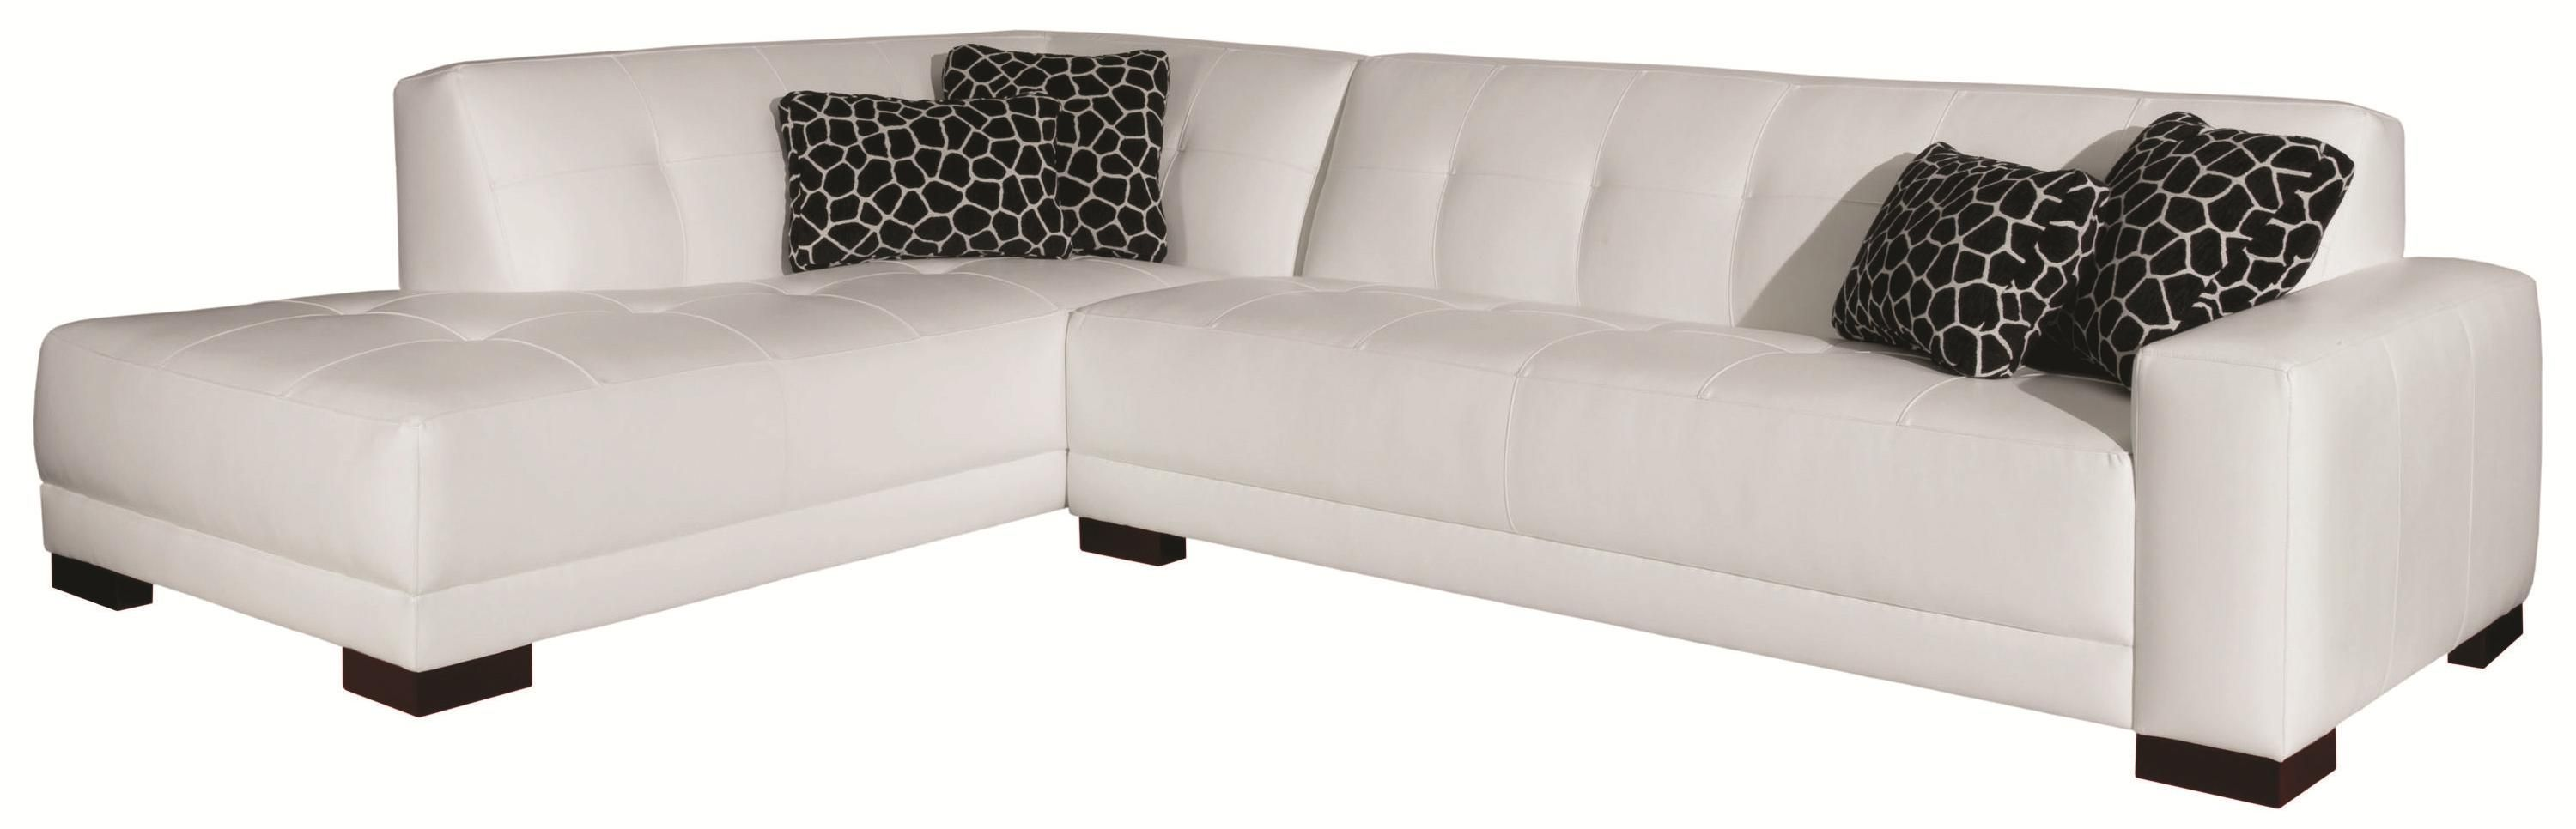 broyhill sofa nebraska furniture mart sofas cama italianos madrid medici contemporary sectional with tufted details by